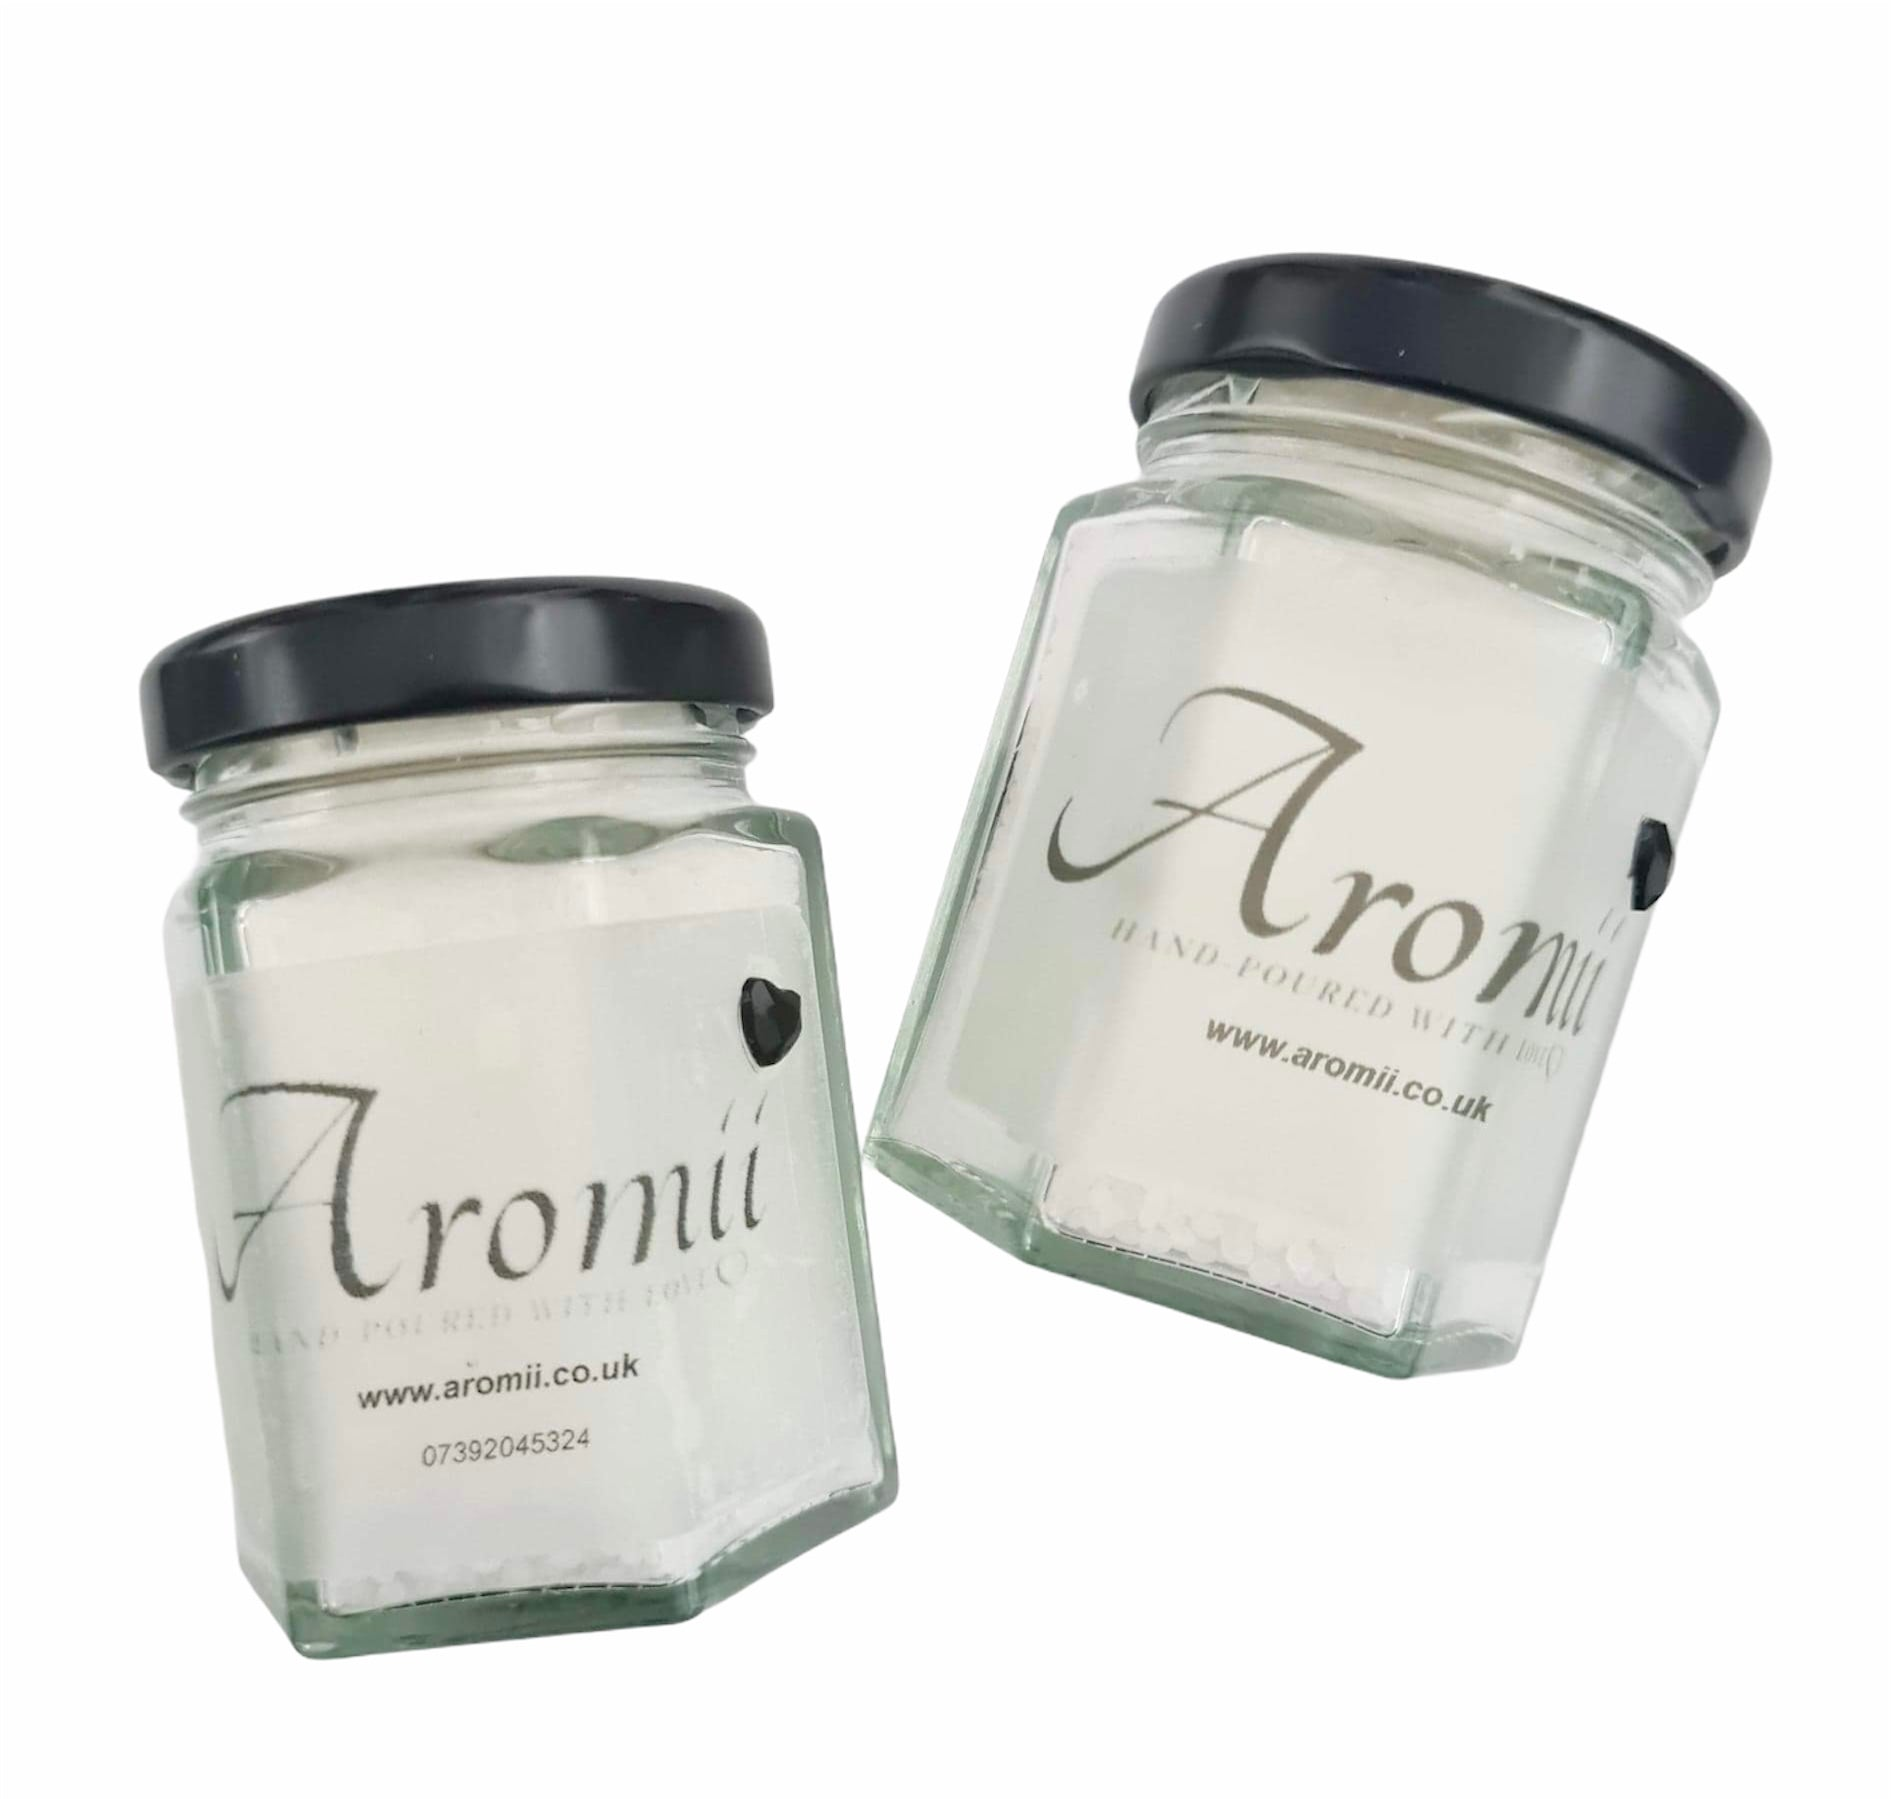 Duo of Aromii Crystals